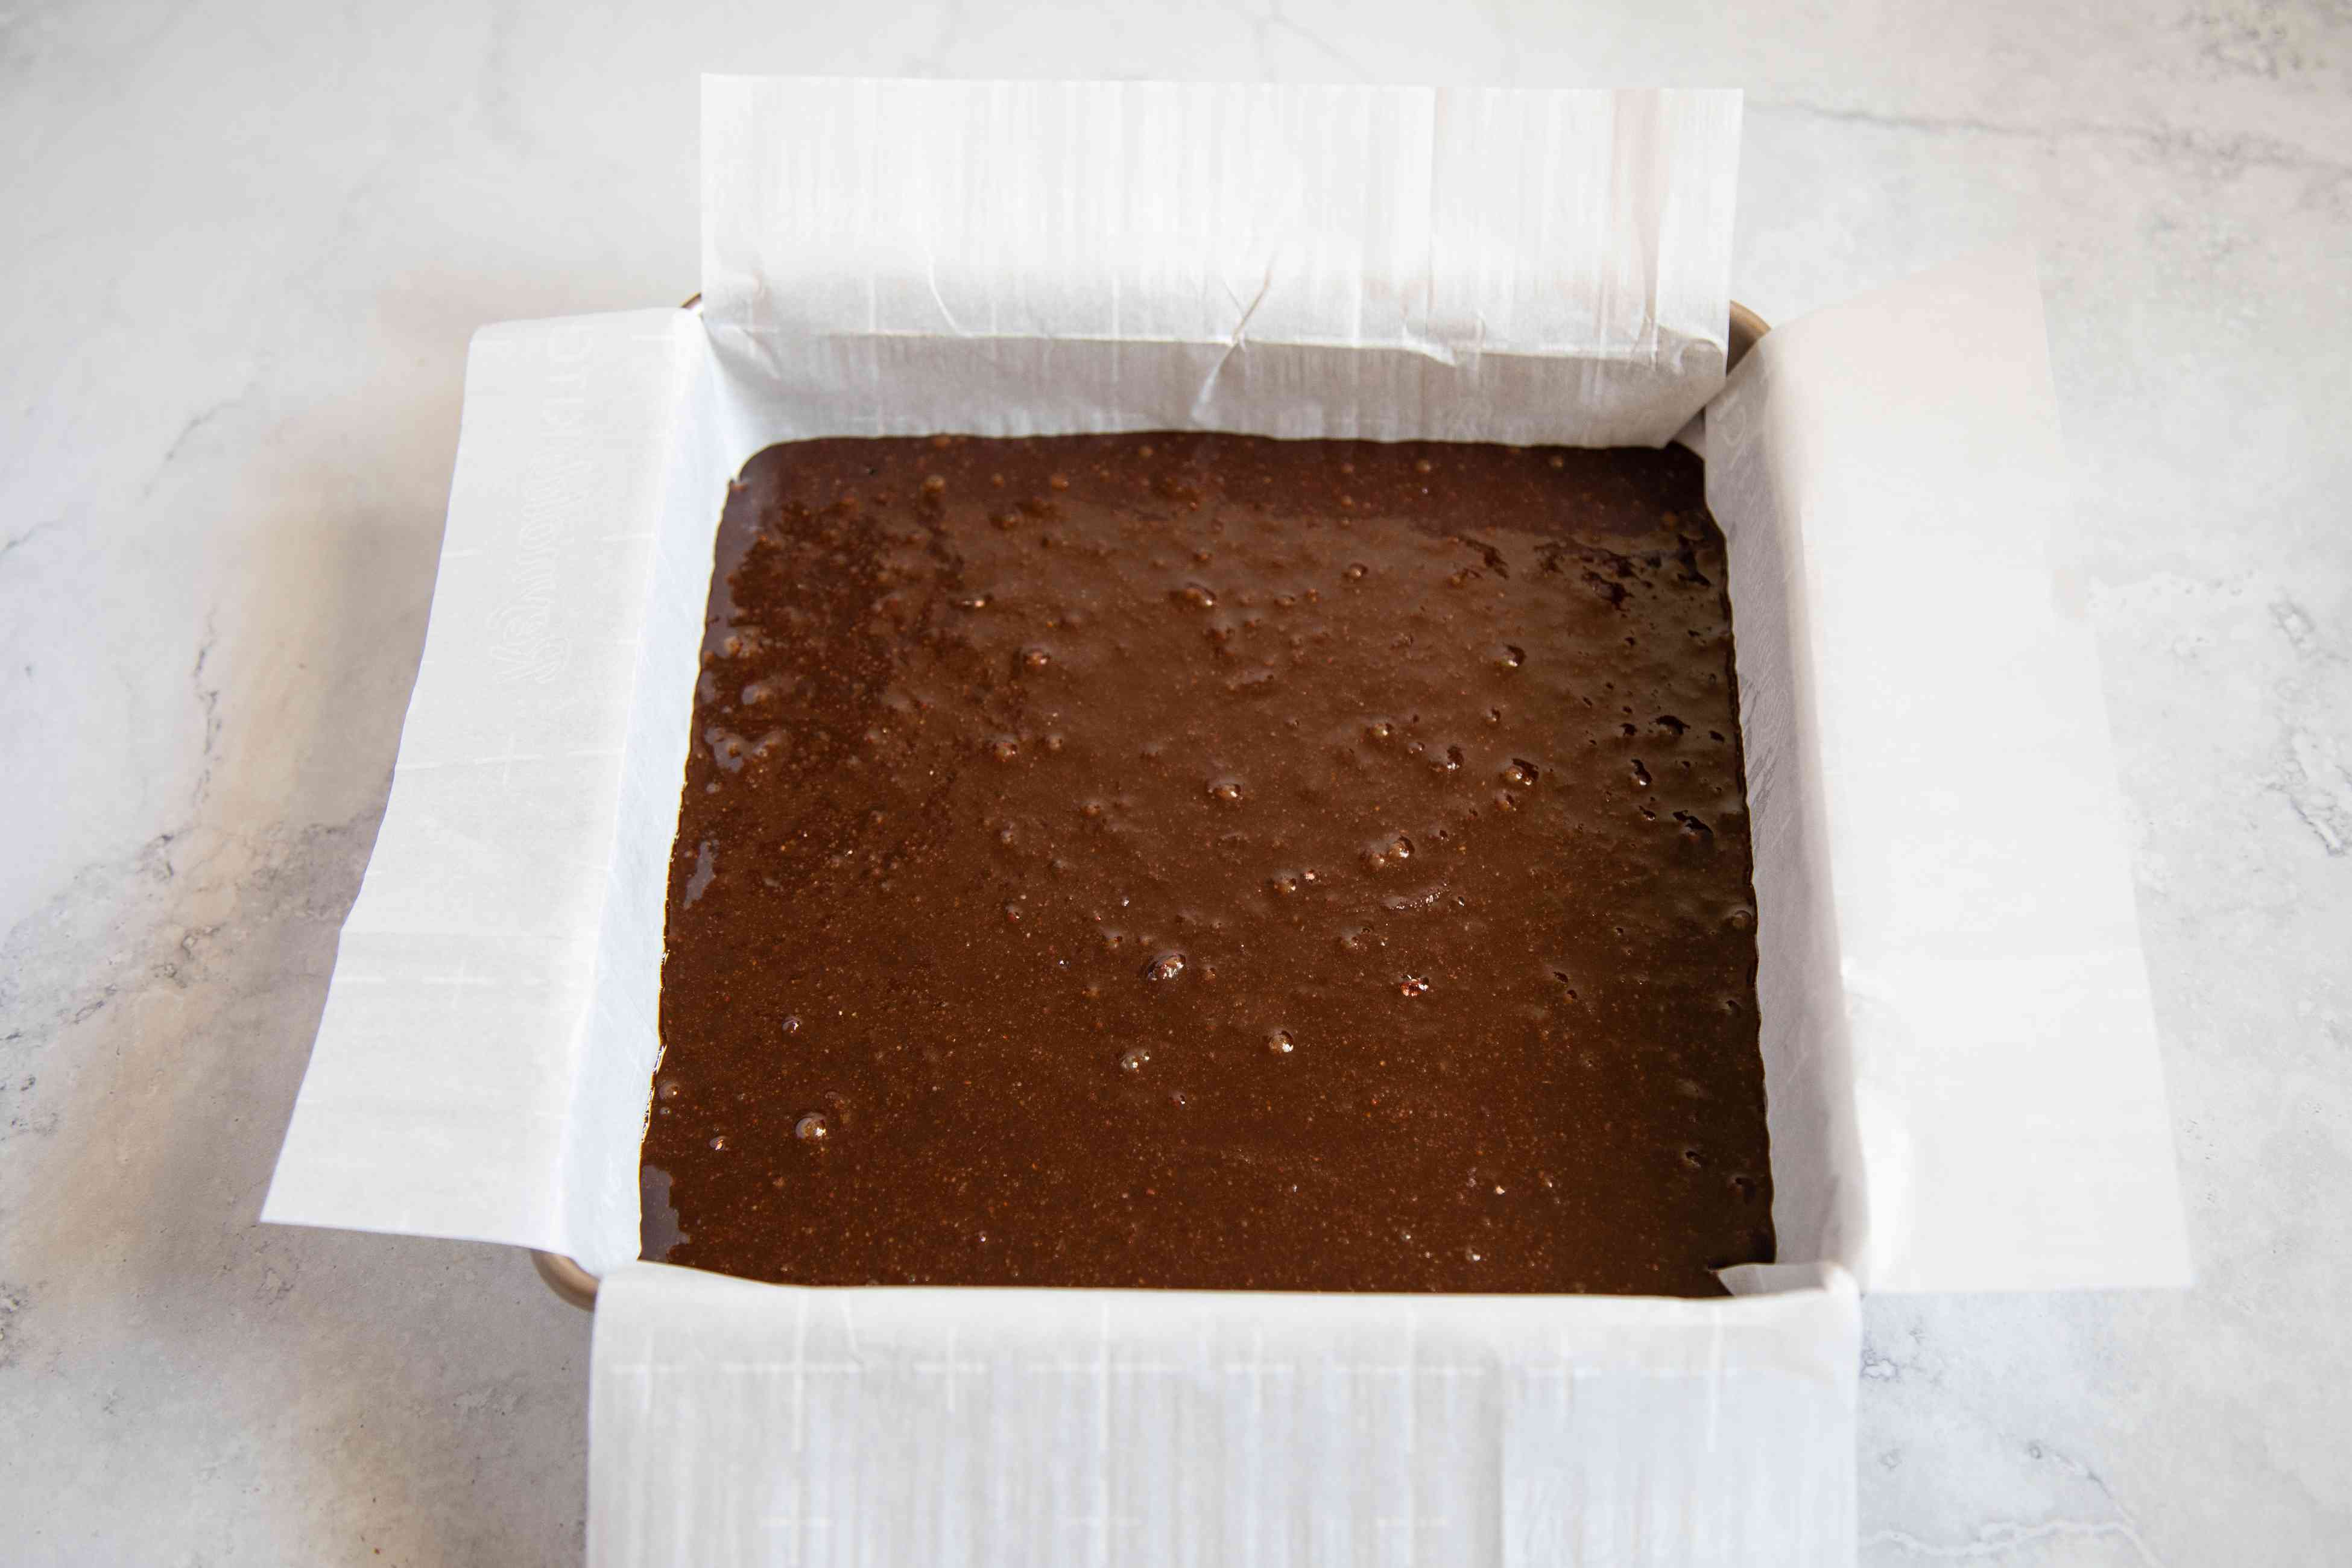 Batter in the pan for Gluten-Free Soy Sauce Brownies.